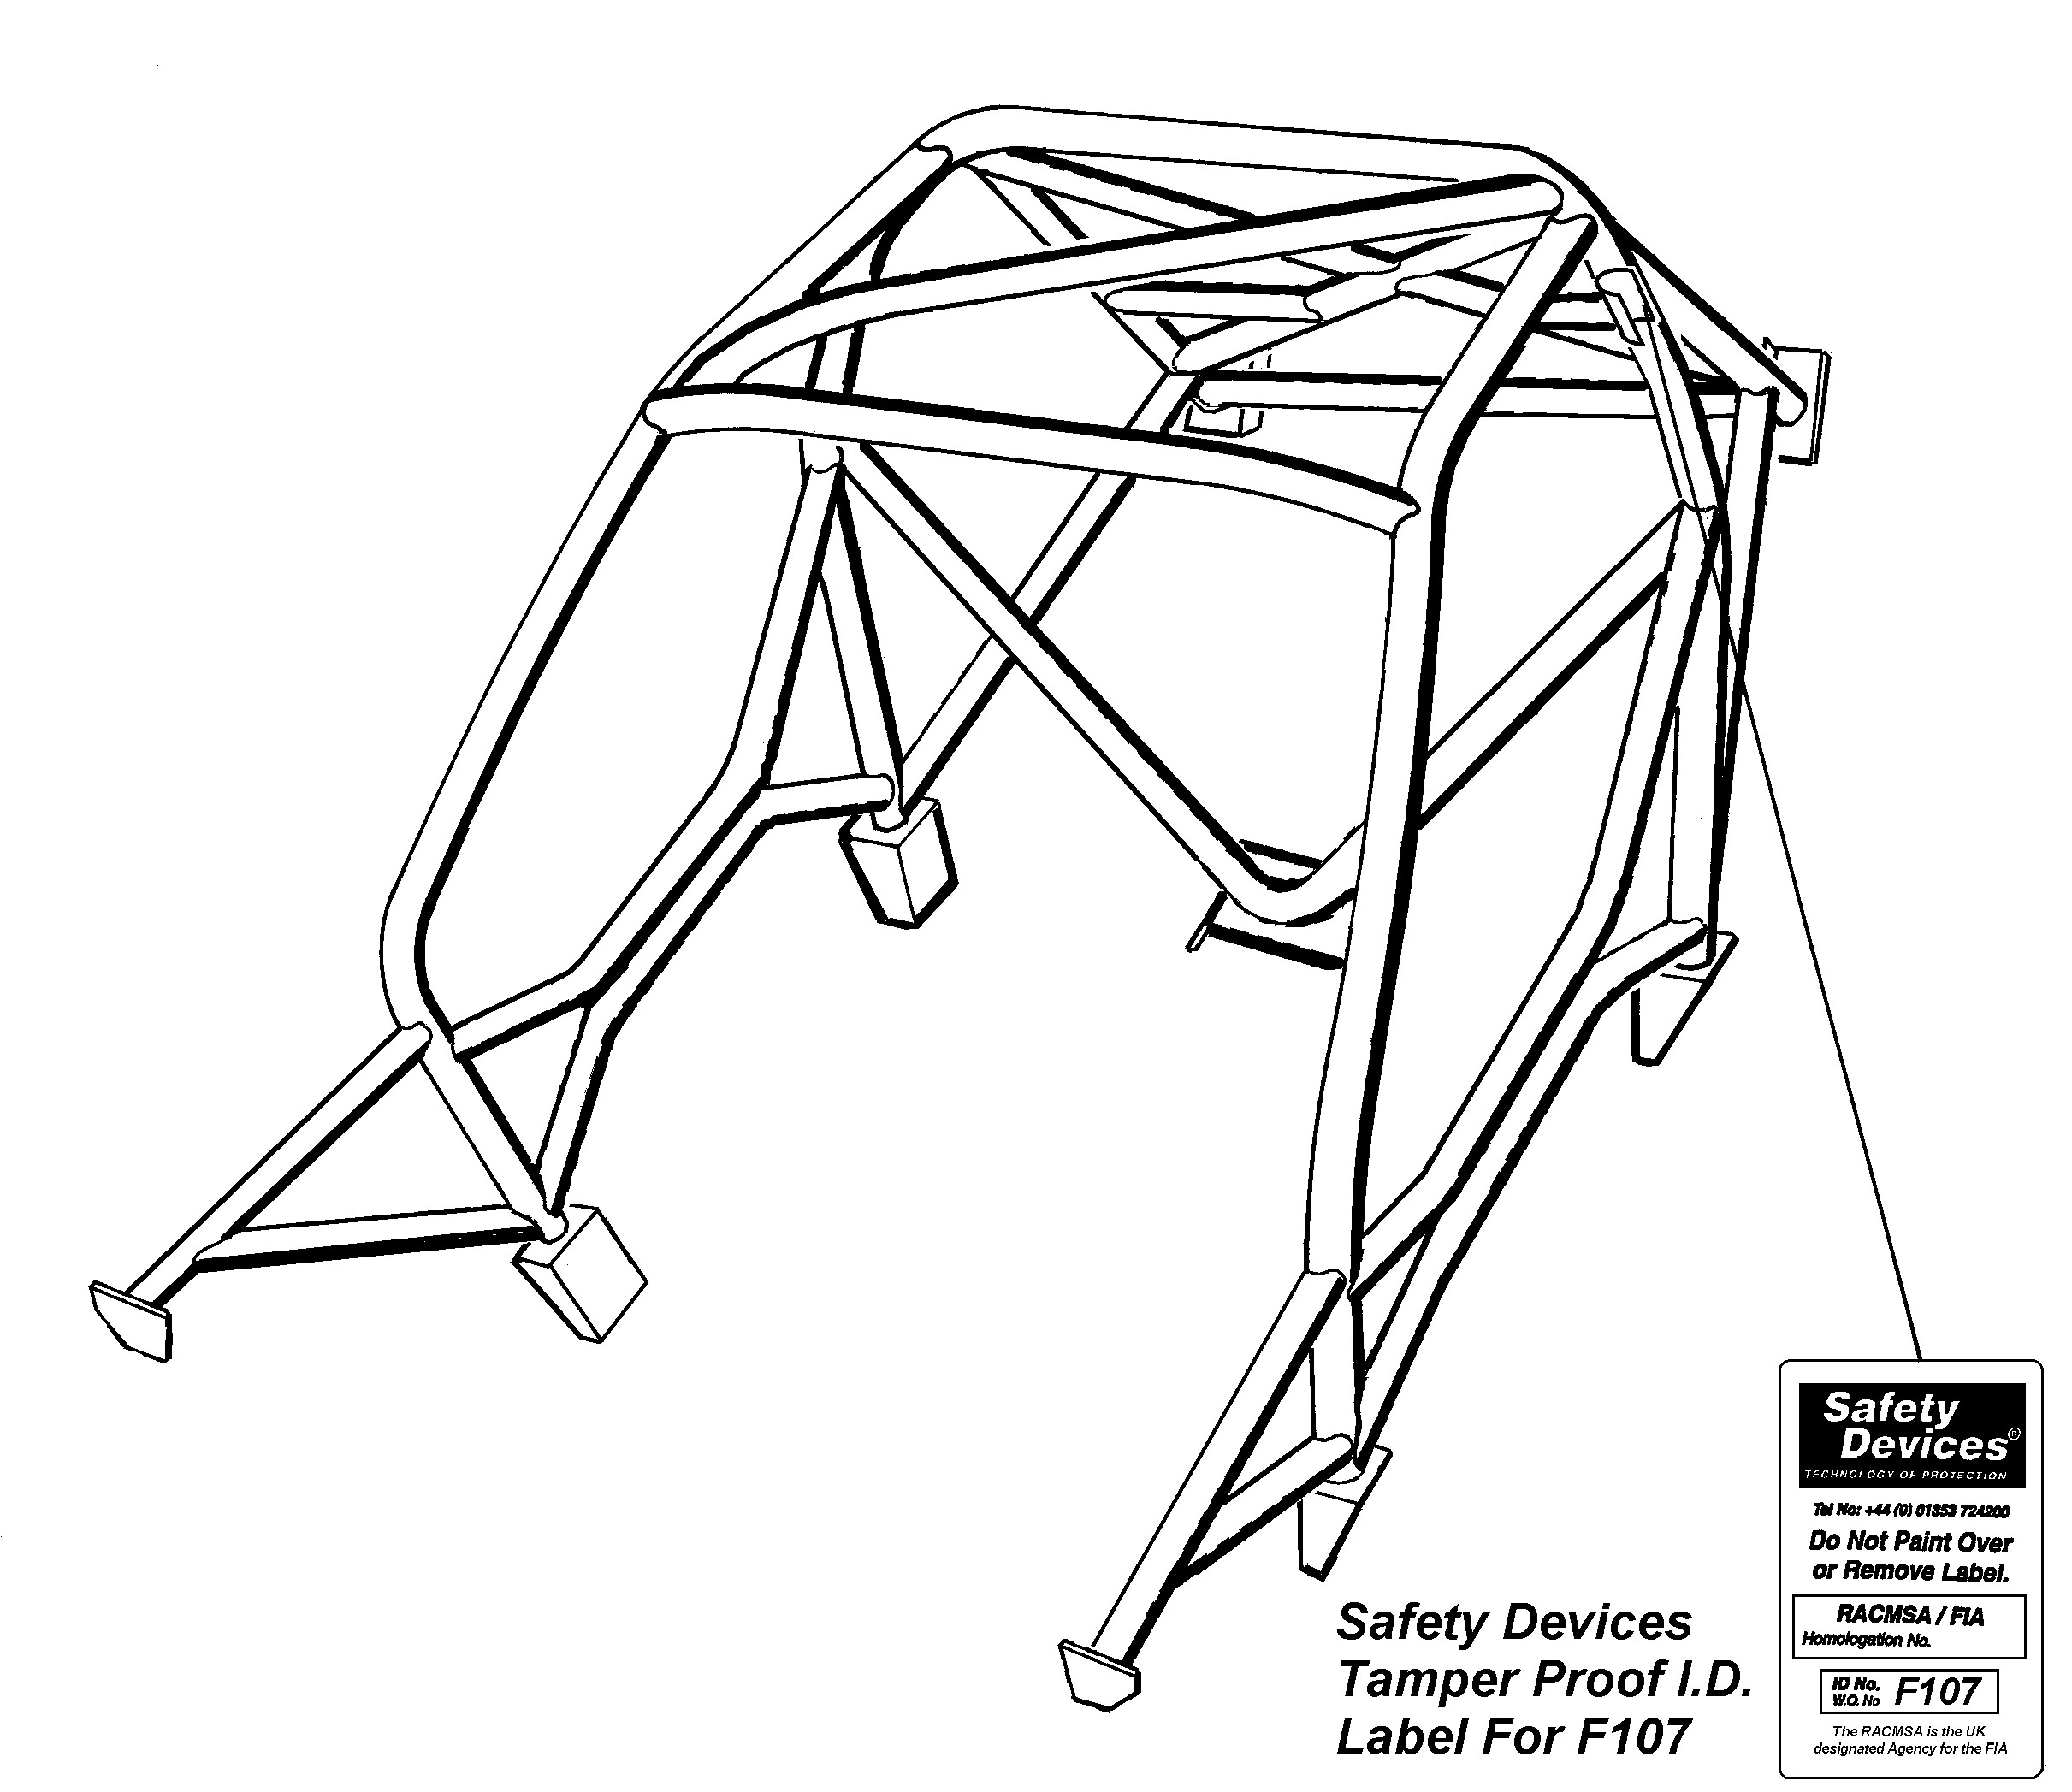 Safety Devices Ford Escort Mk1 Weld In Roll Cage